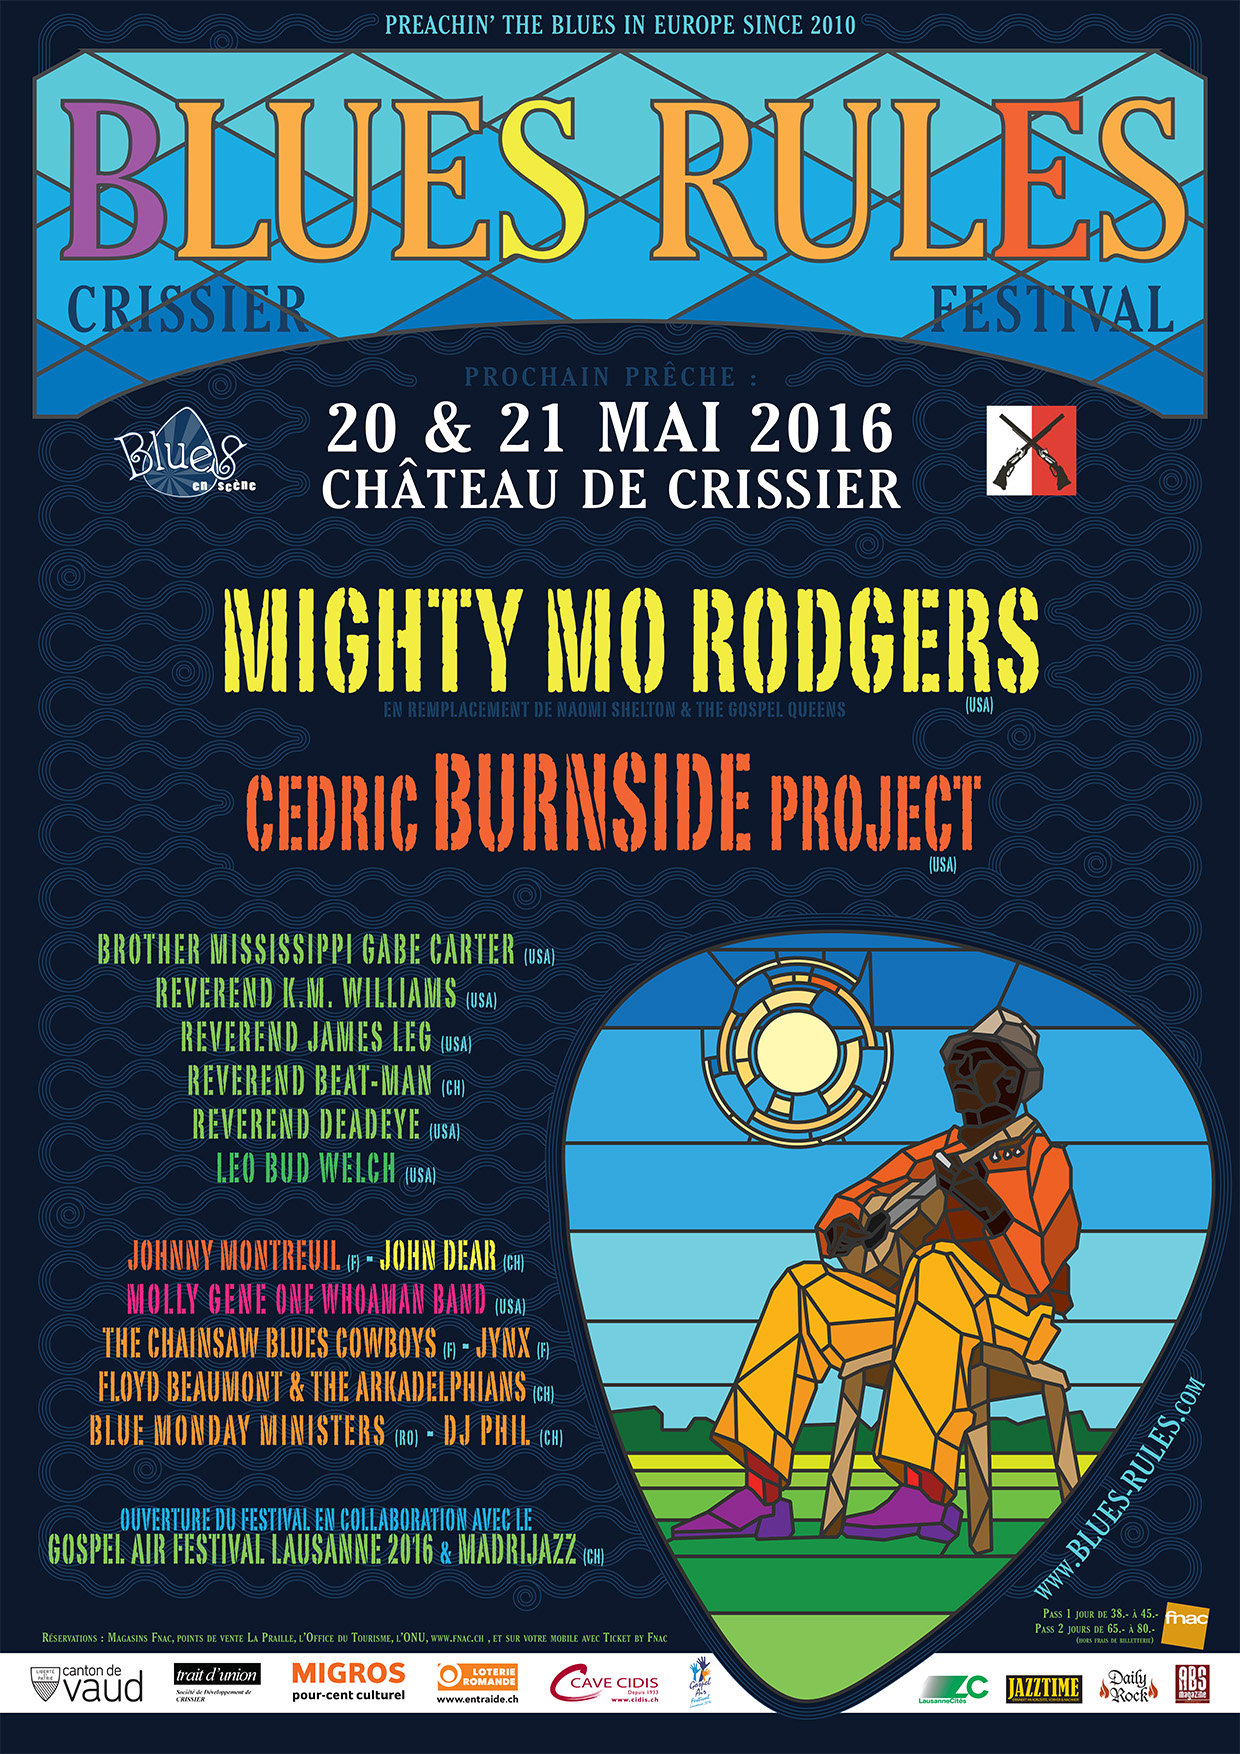 Blues Rules Crissier Festival 2016